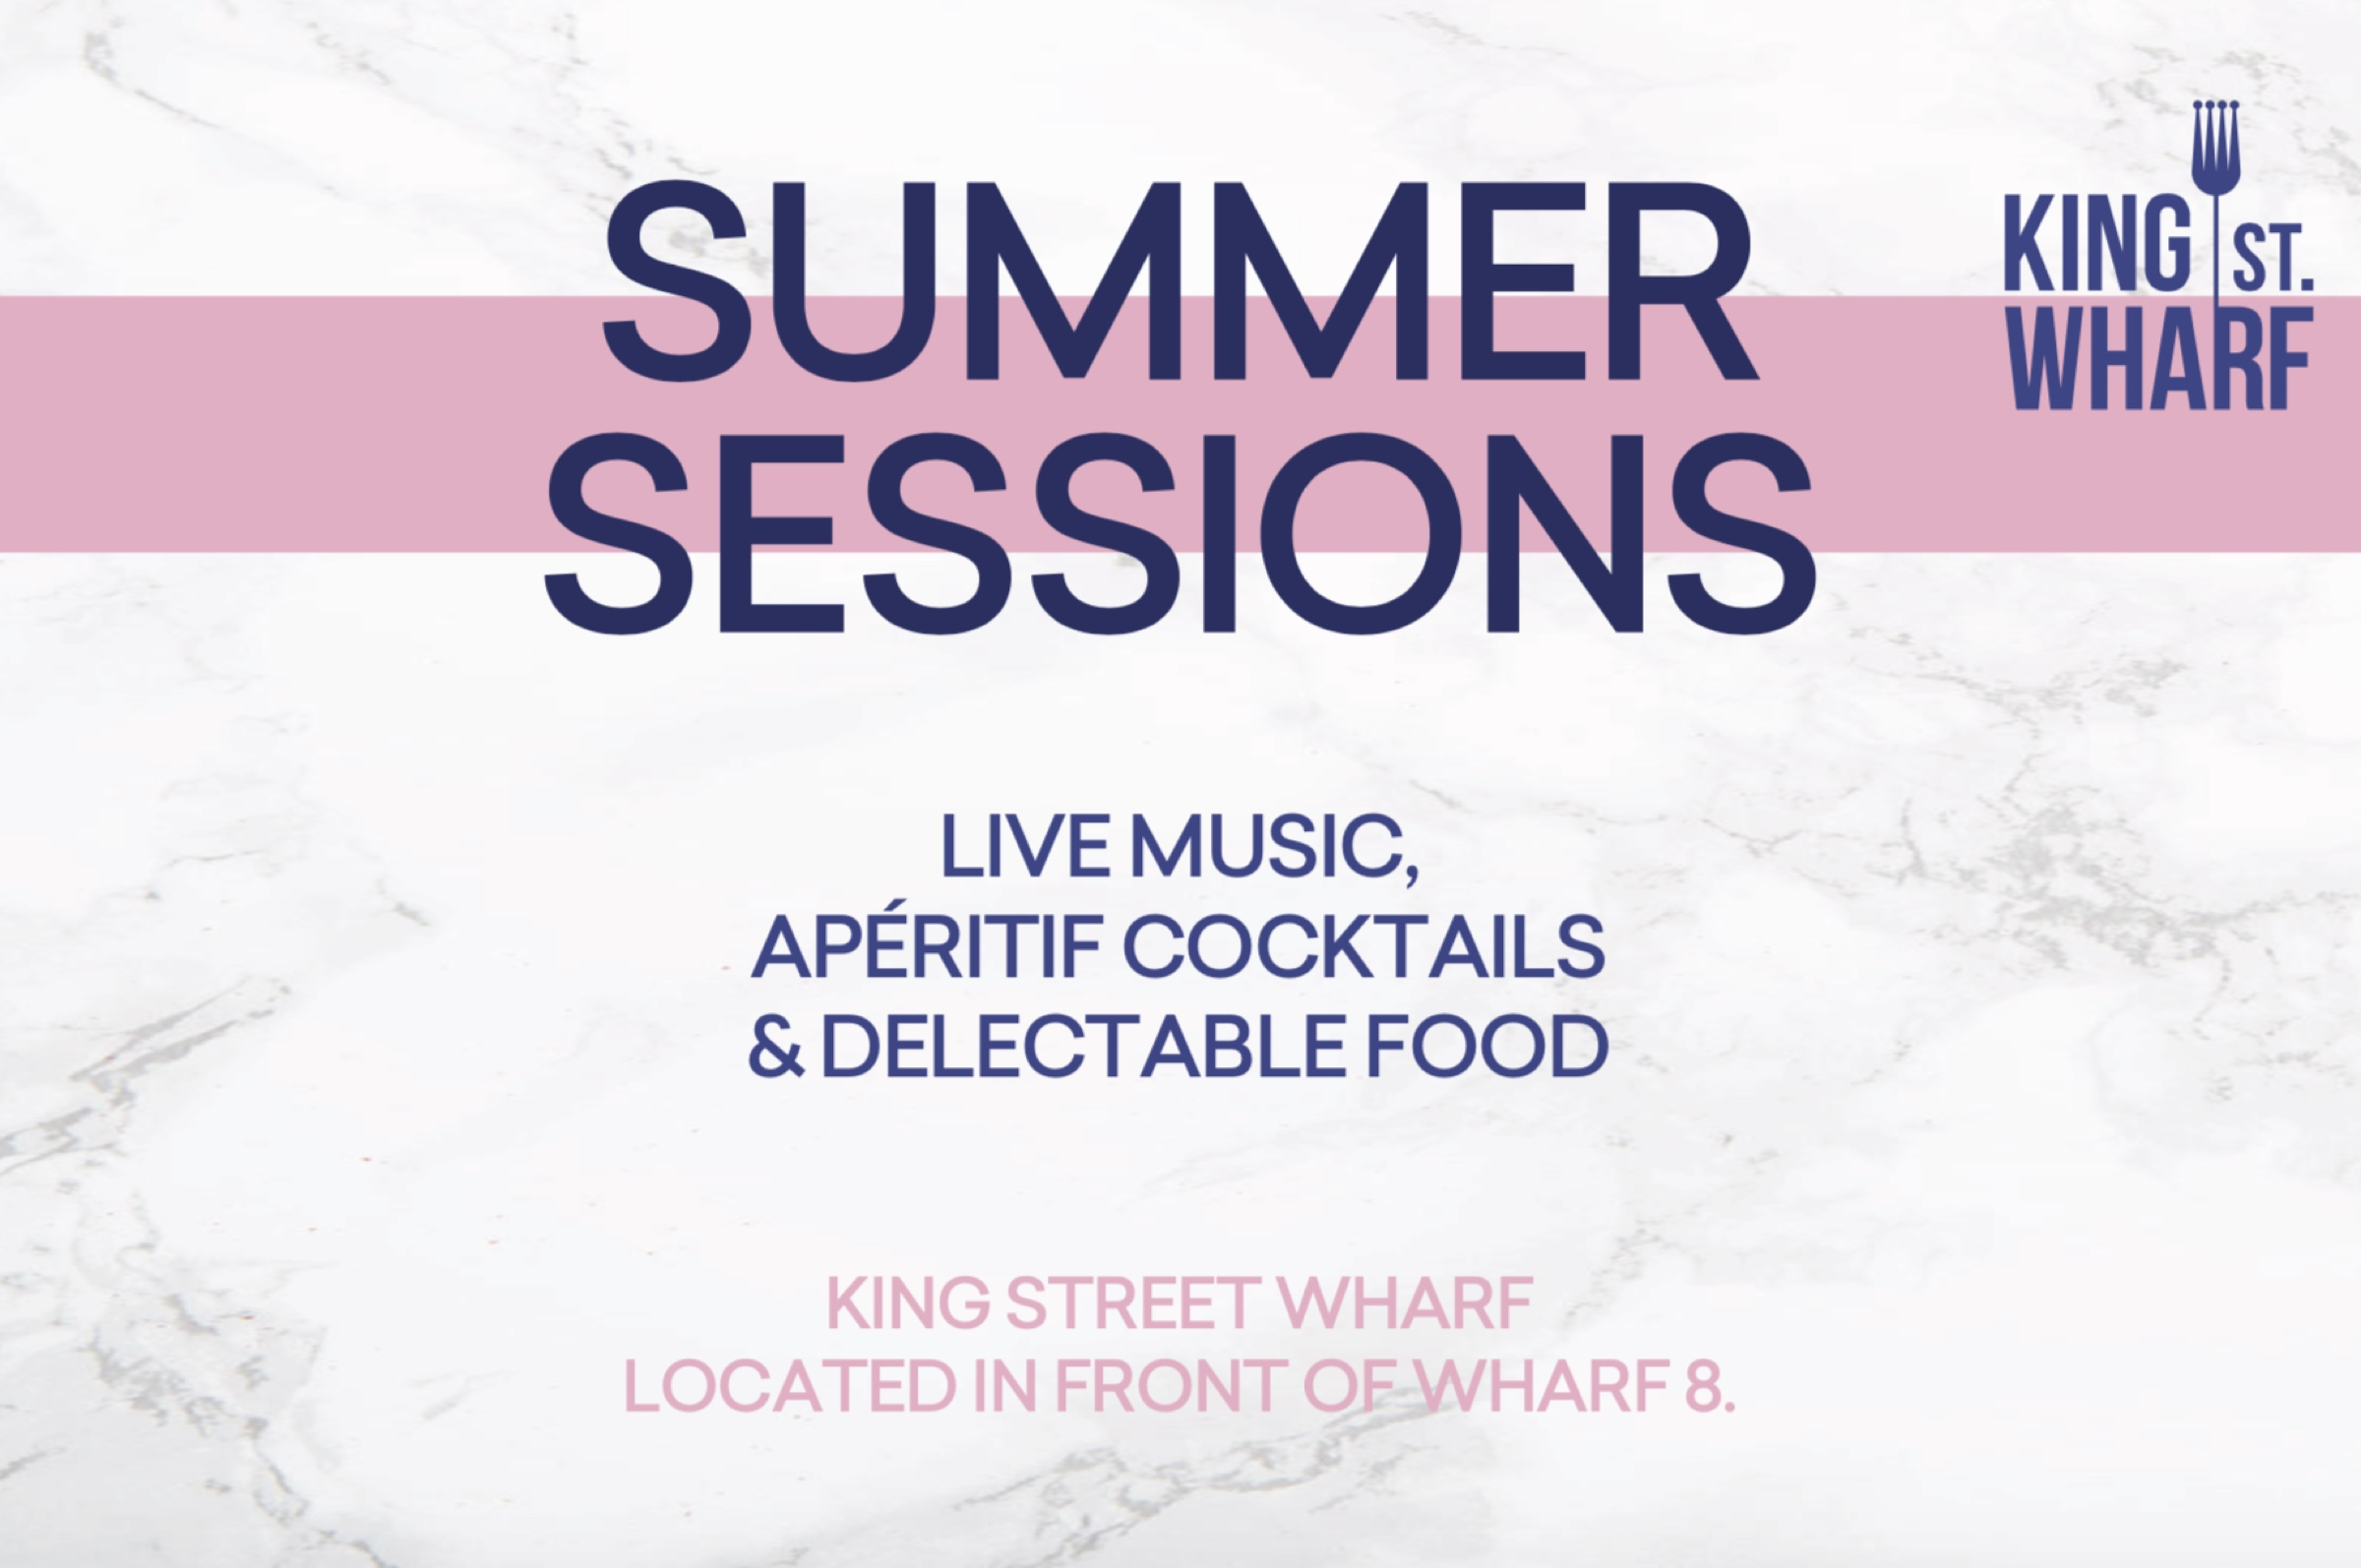 Summer Sessions at King Street Wharf 1